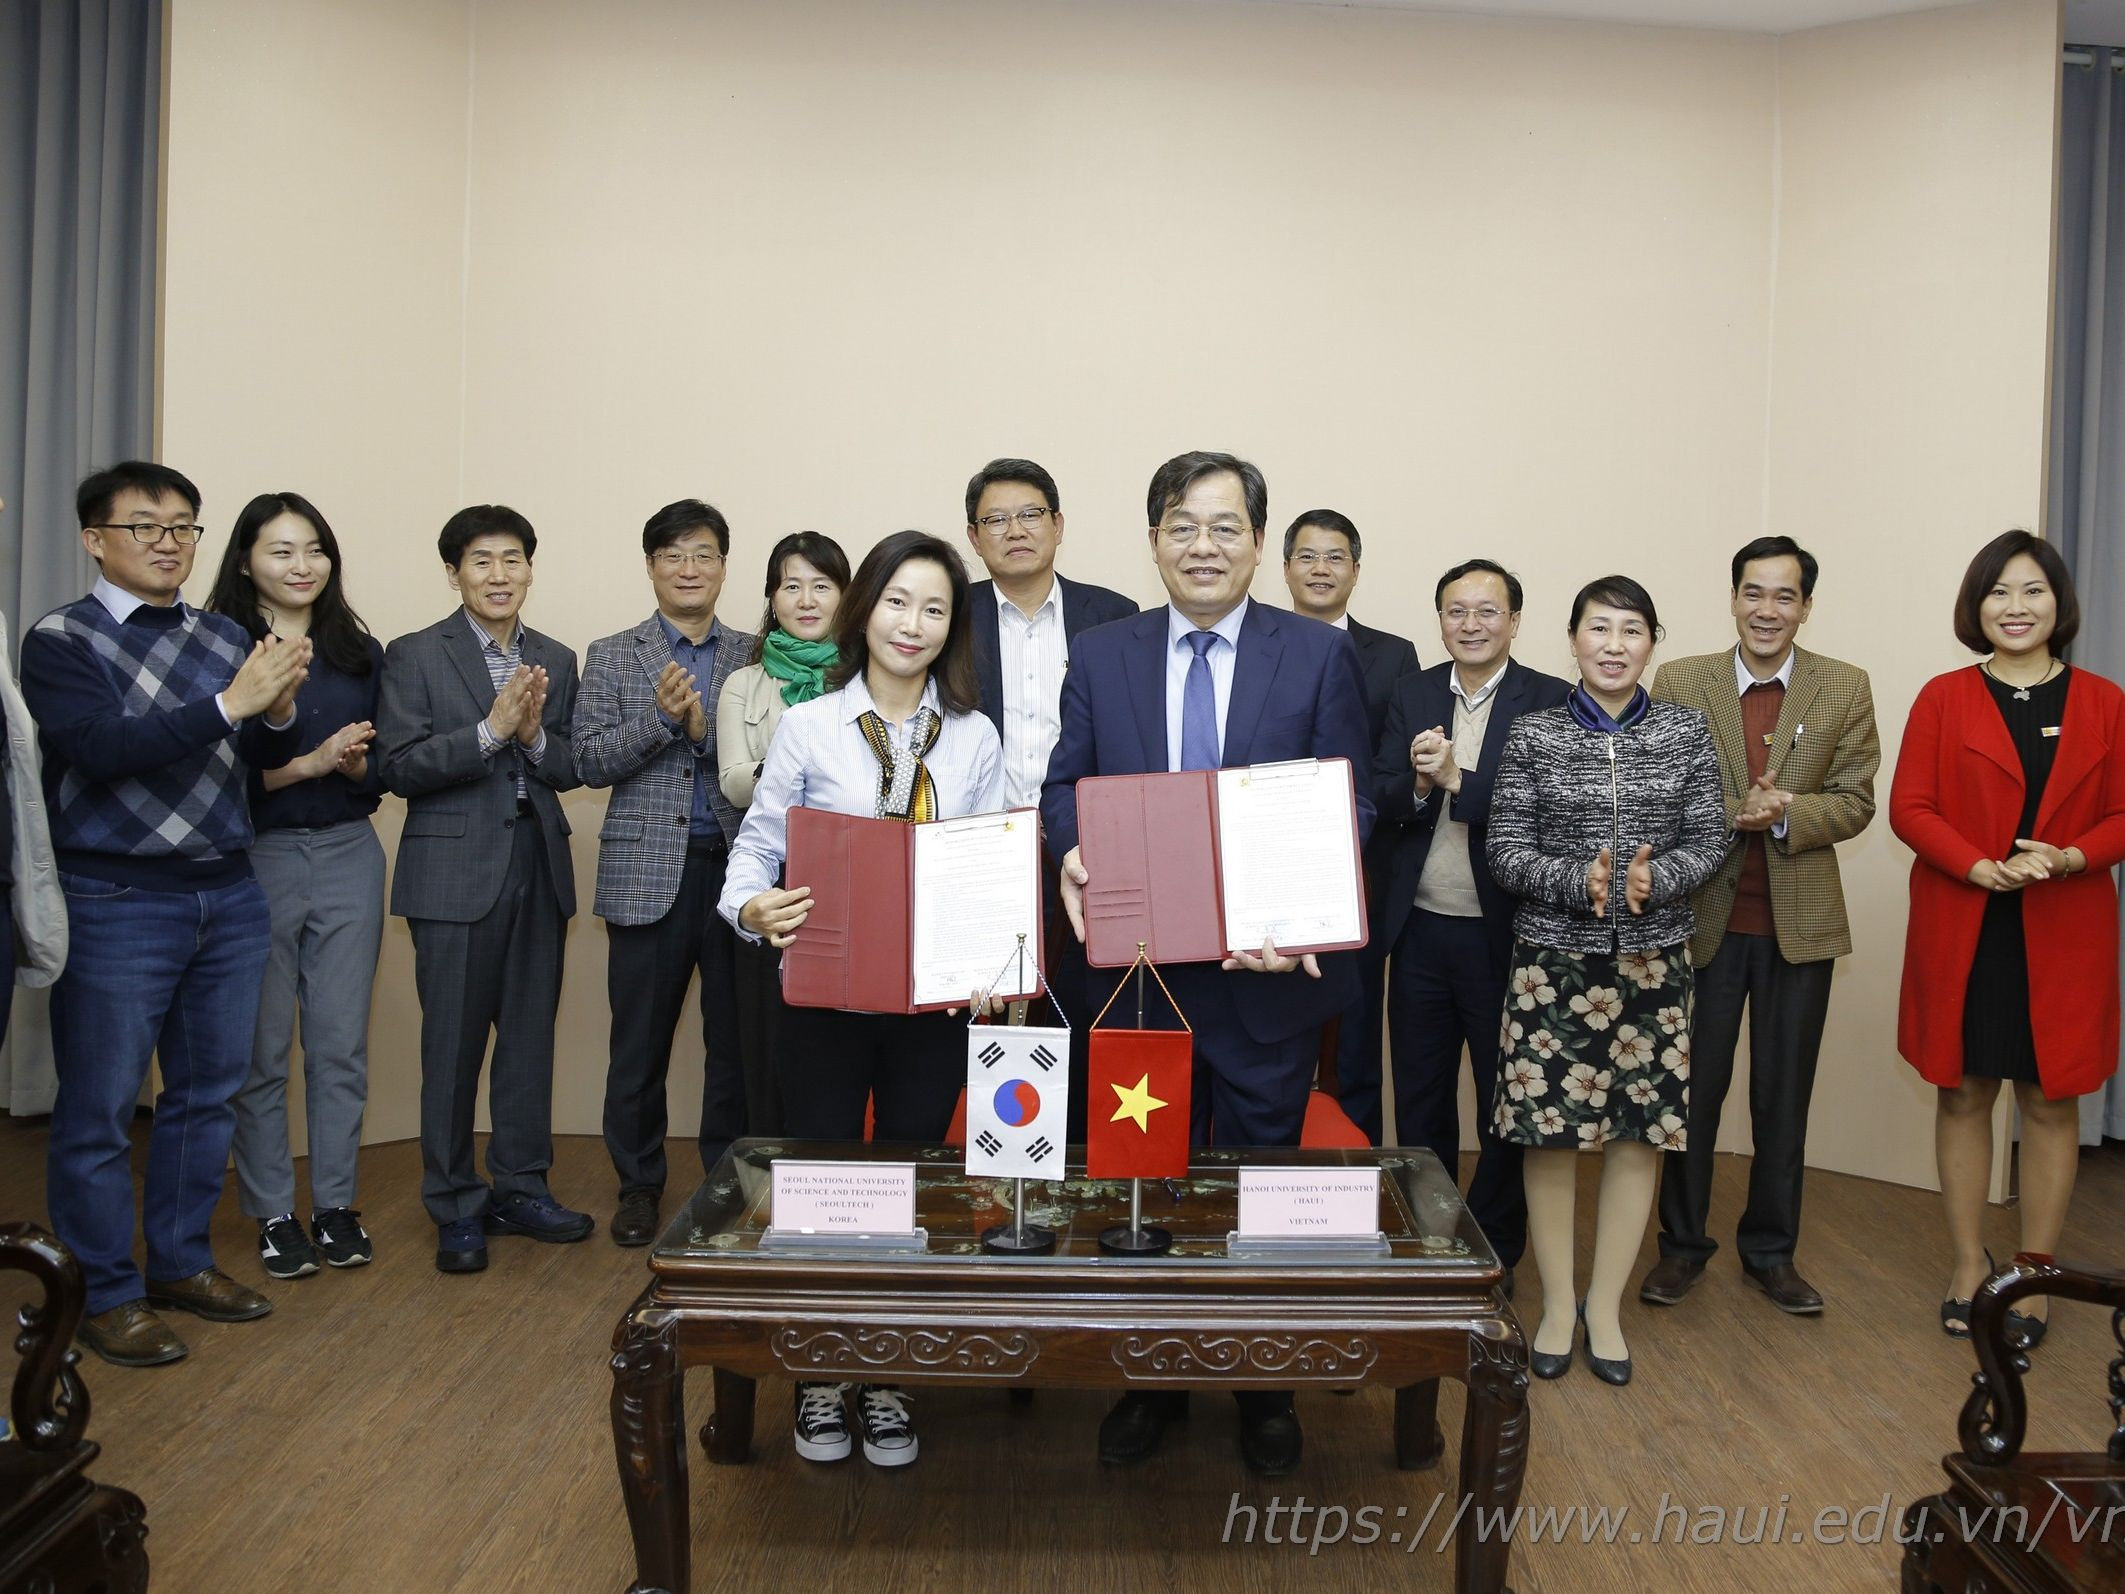 Signing a Memorandum of Understanding with Seoul National University of Science and Technology - Korea